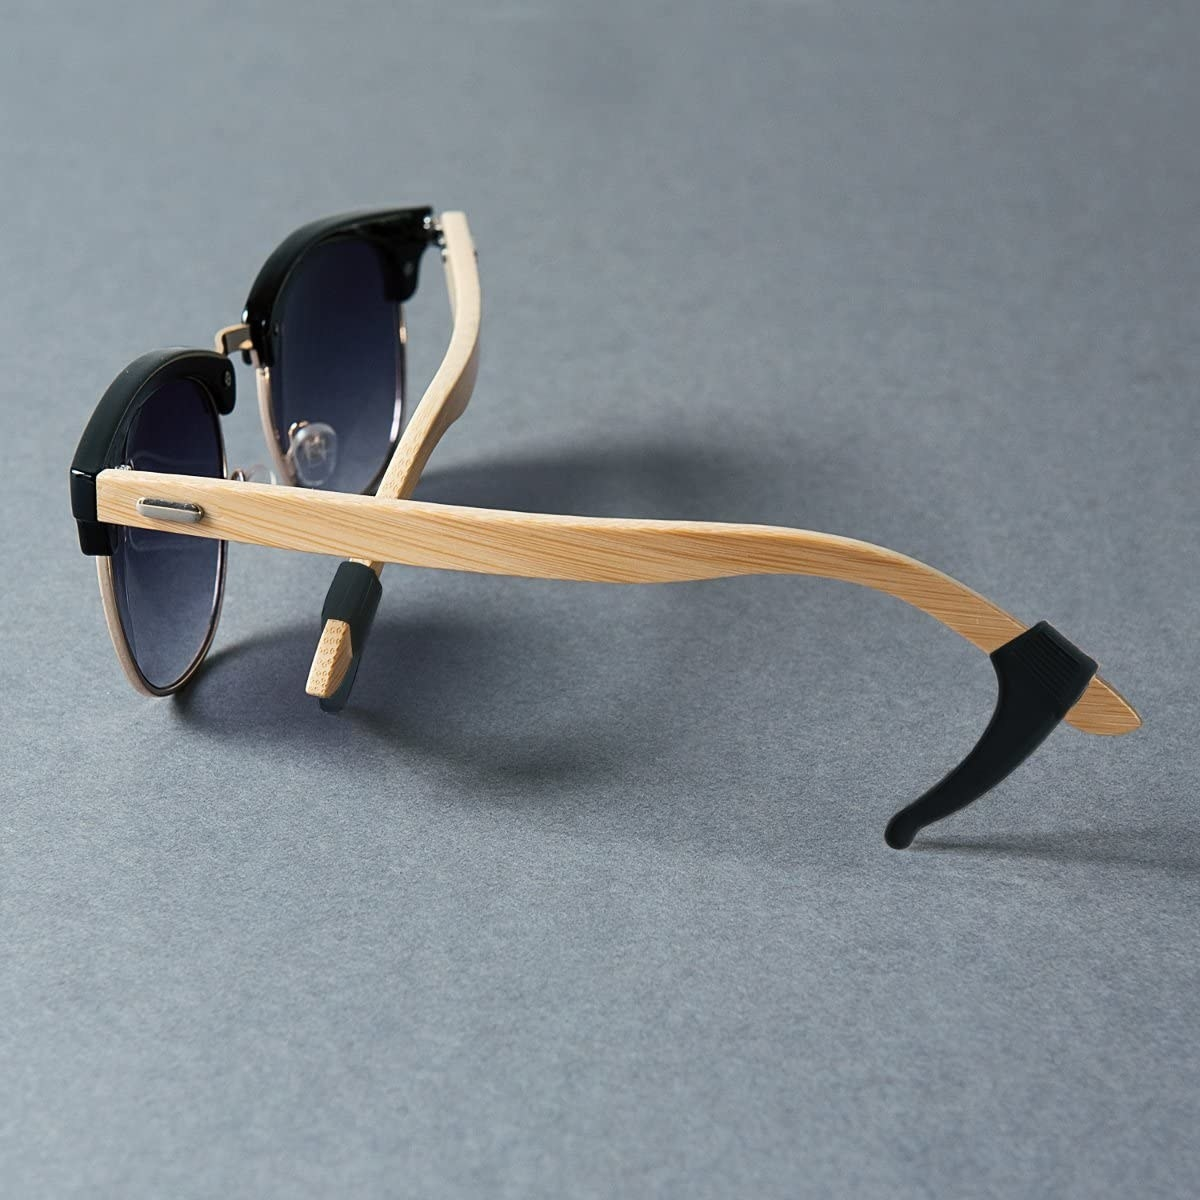 A pair of sunglasses with the silicone tips on their arms